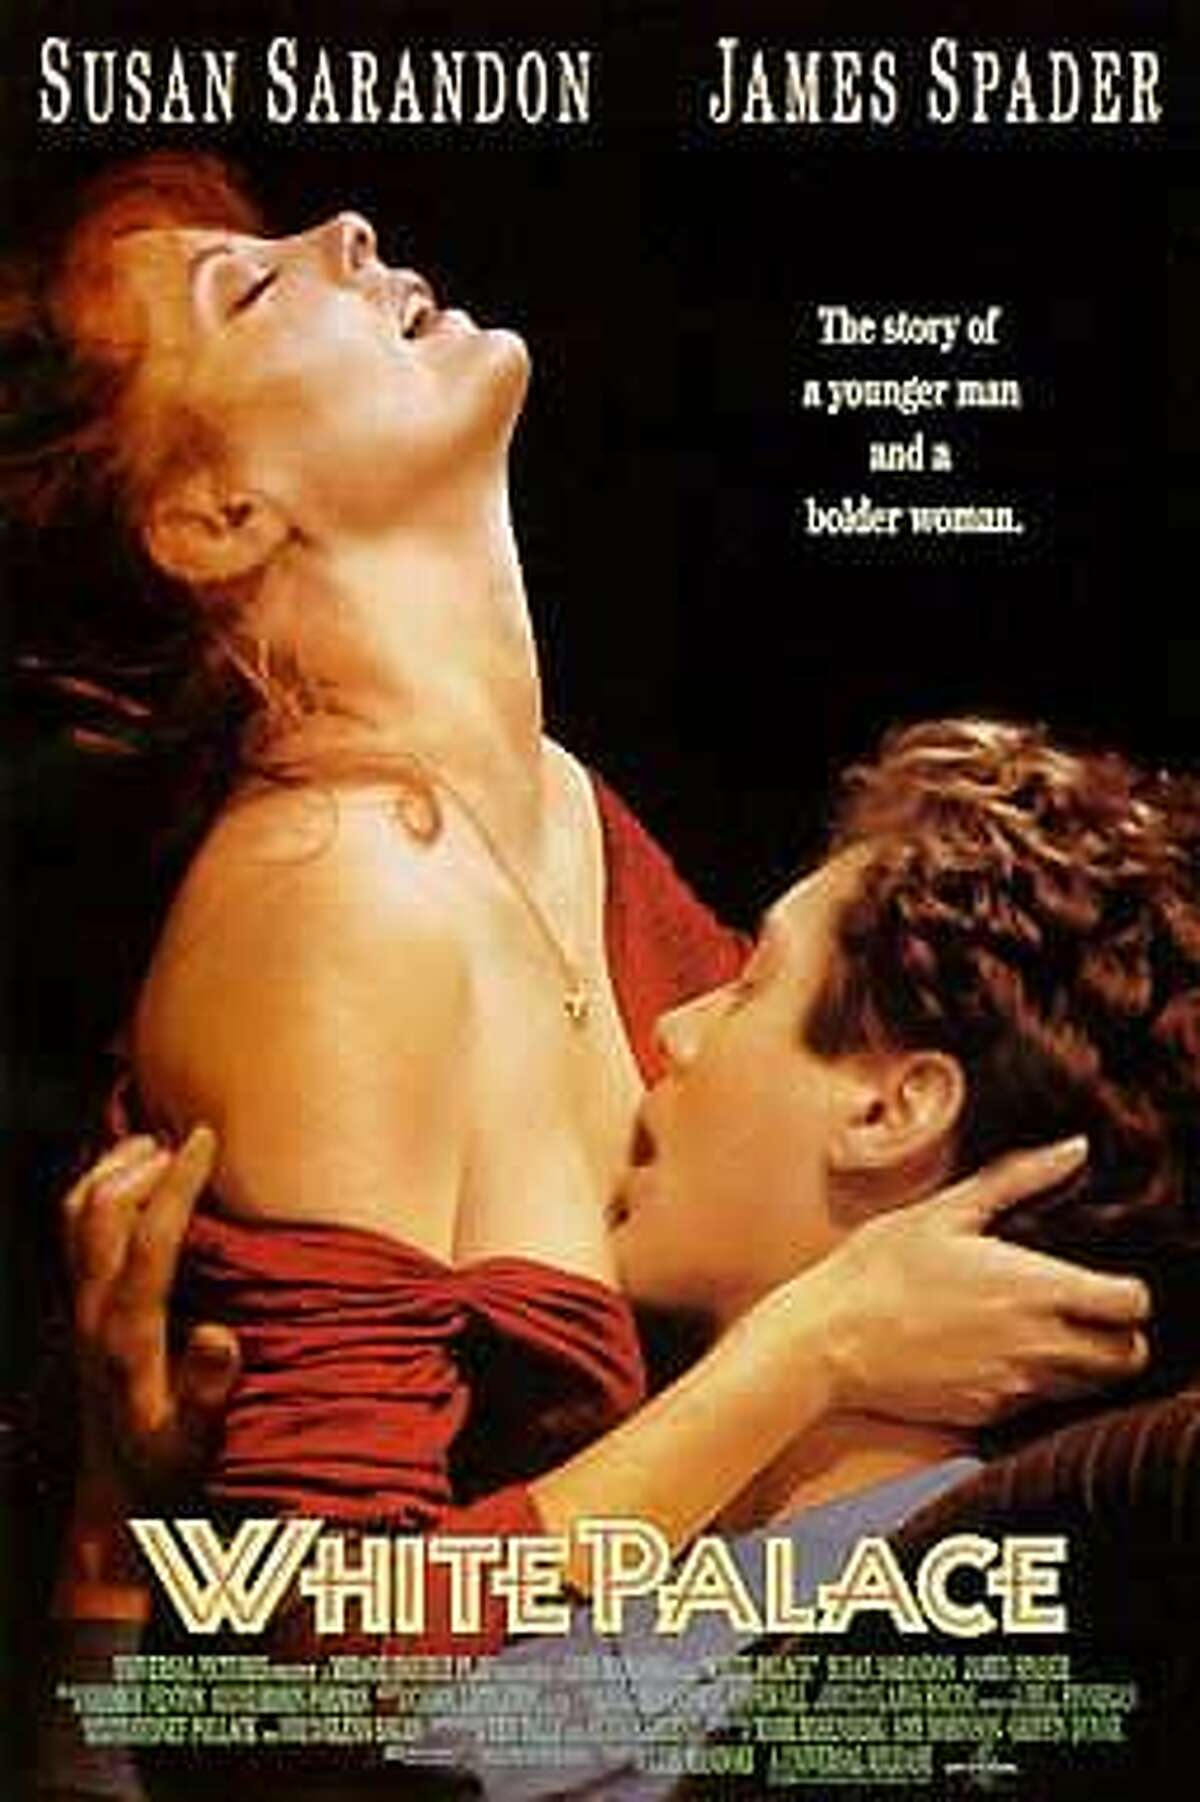 """""""White Palace"""" was filmed in St. Louis in 1989 and hit theaters in 1990. It stars James Spader and Susan Sarandon."""